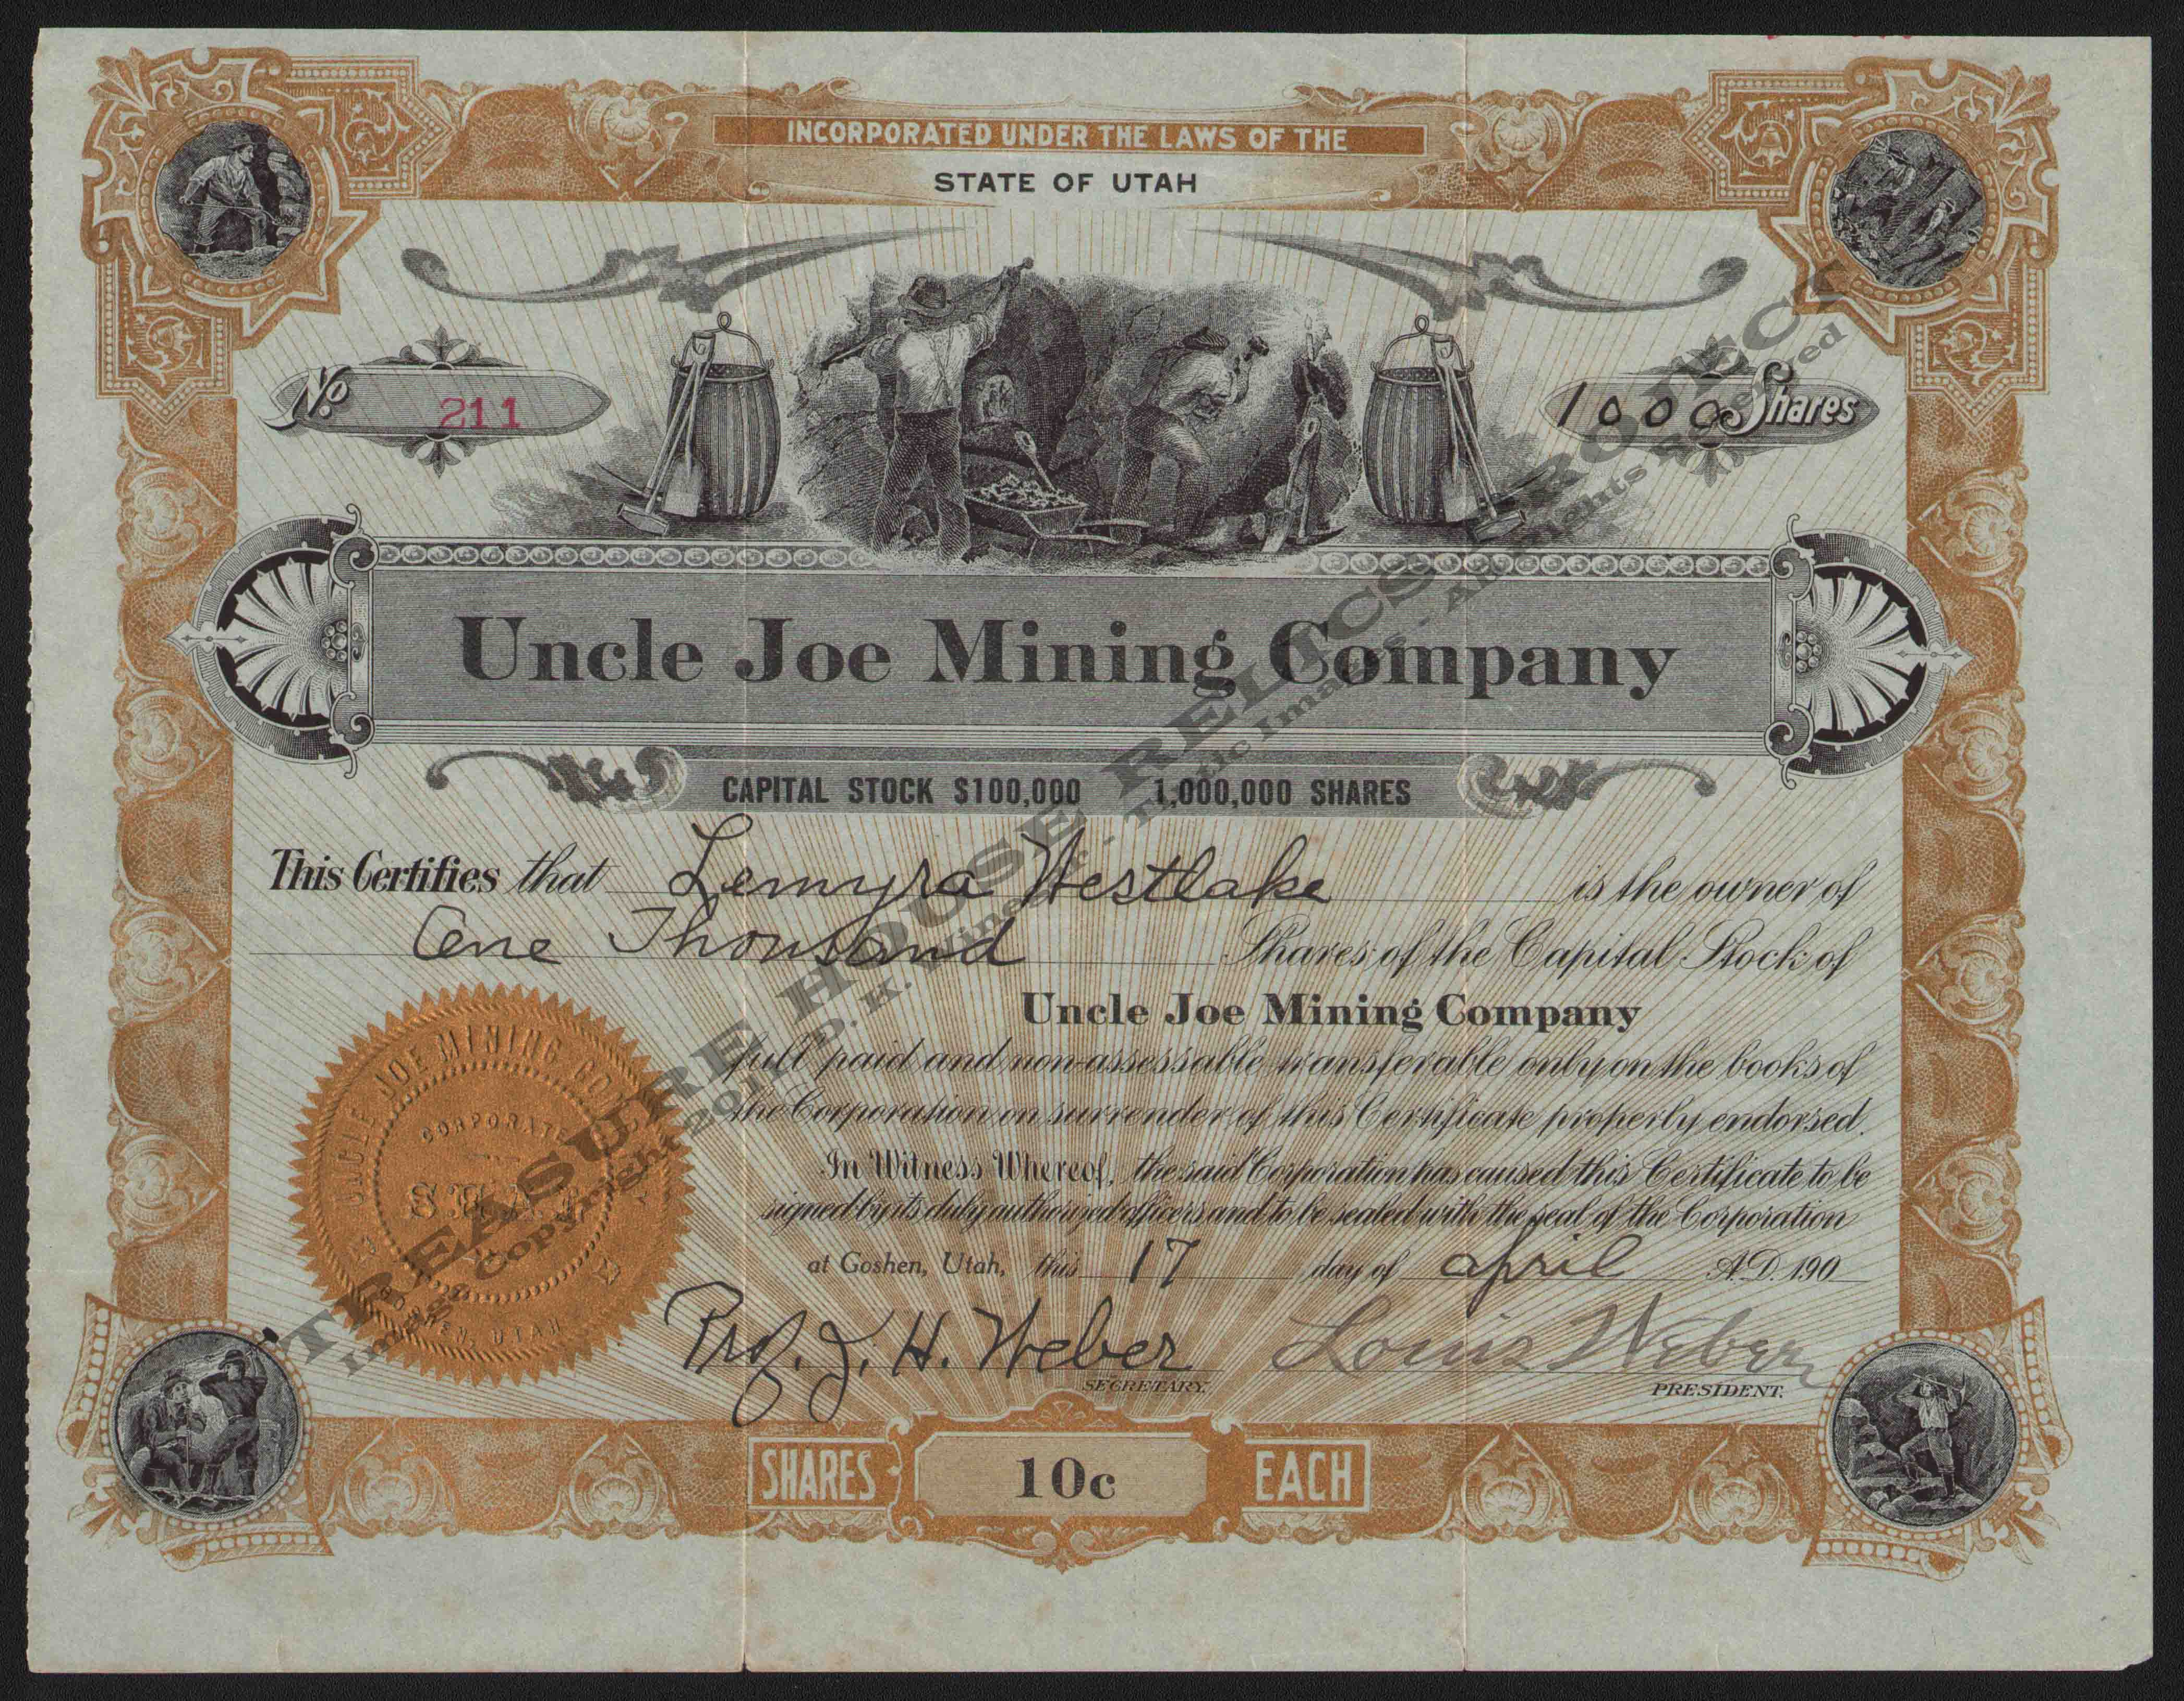 UNCLE_JOE_MINING_CO_211_400_emboss.jpg